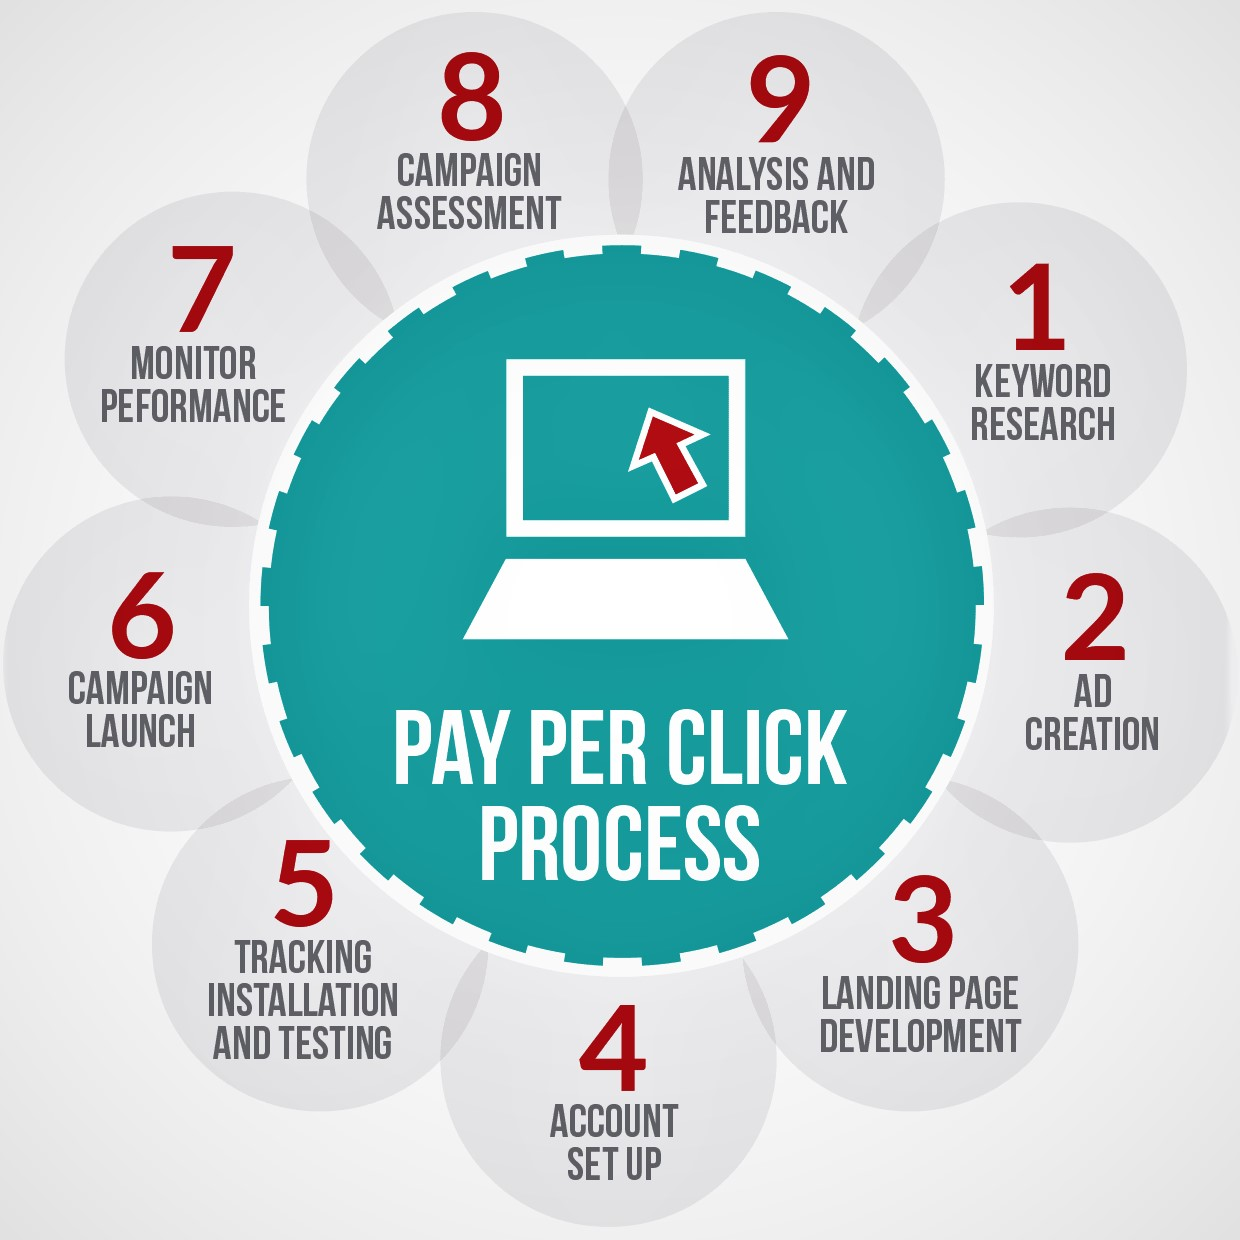 PPC training in Chandigarh by Netmax technologies ppc training in chandigarh PPC training in chandigarh with Certification & live projects ppc training in chandigarh